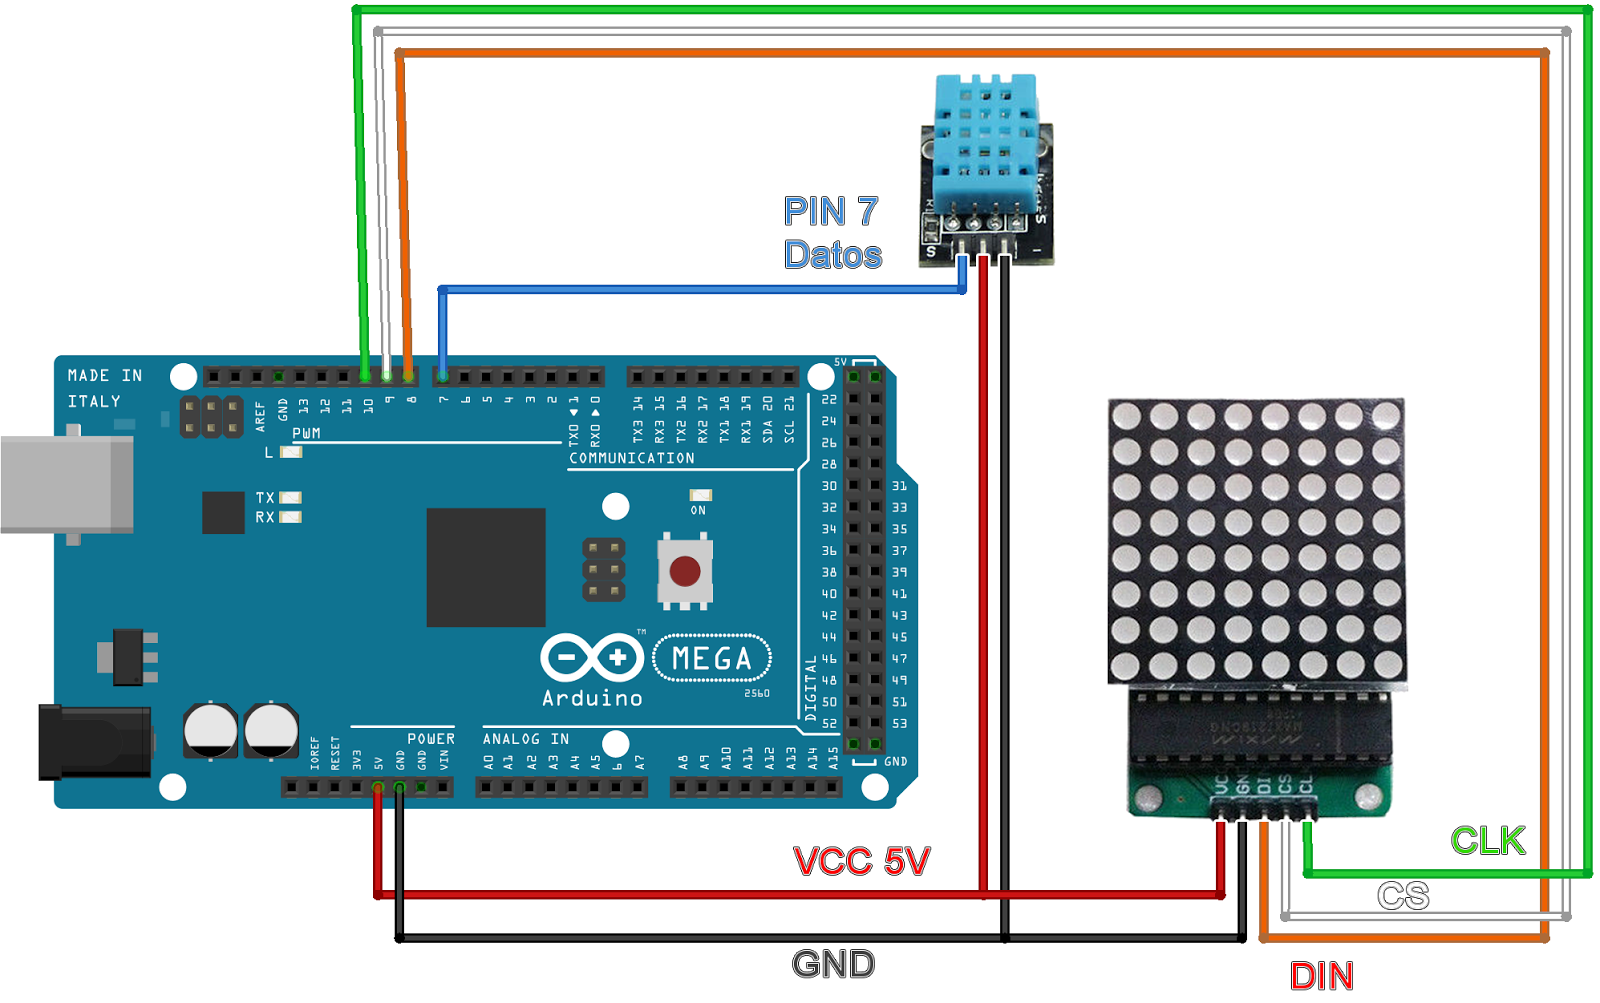 IMU: Get started with Arduino and the MPU 6050 Sensor!